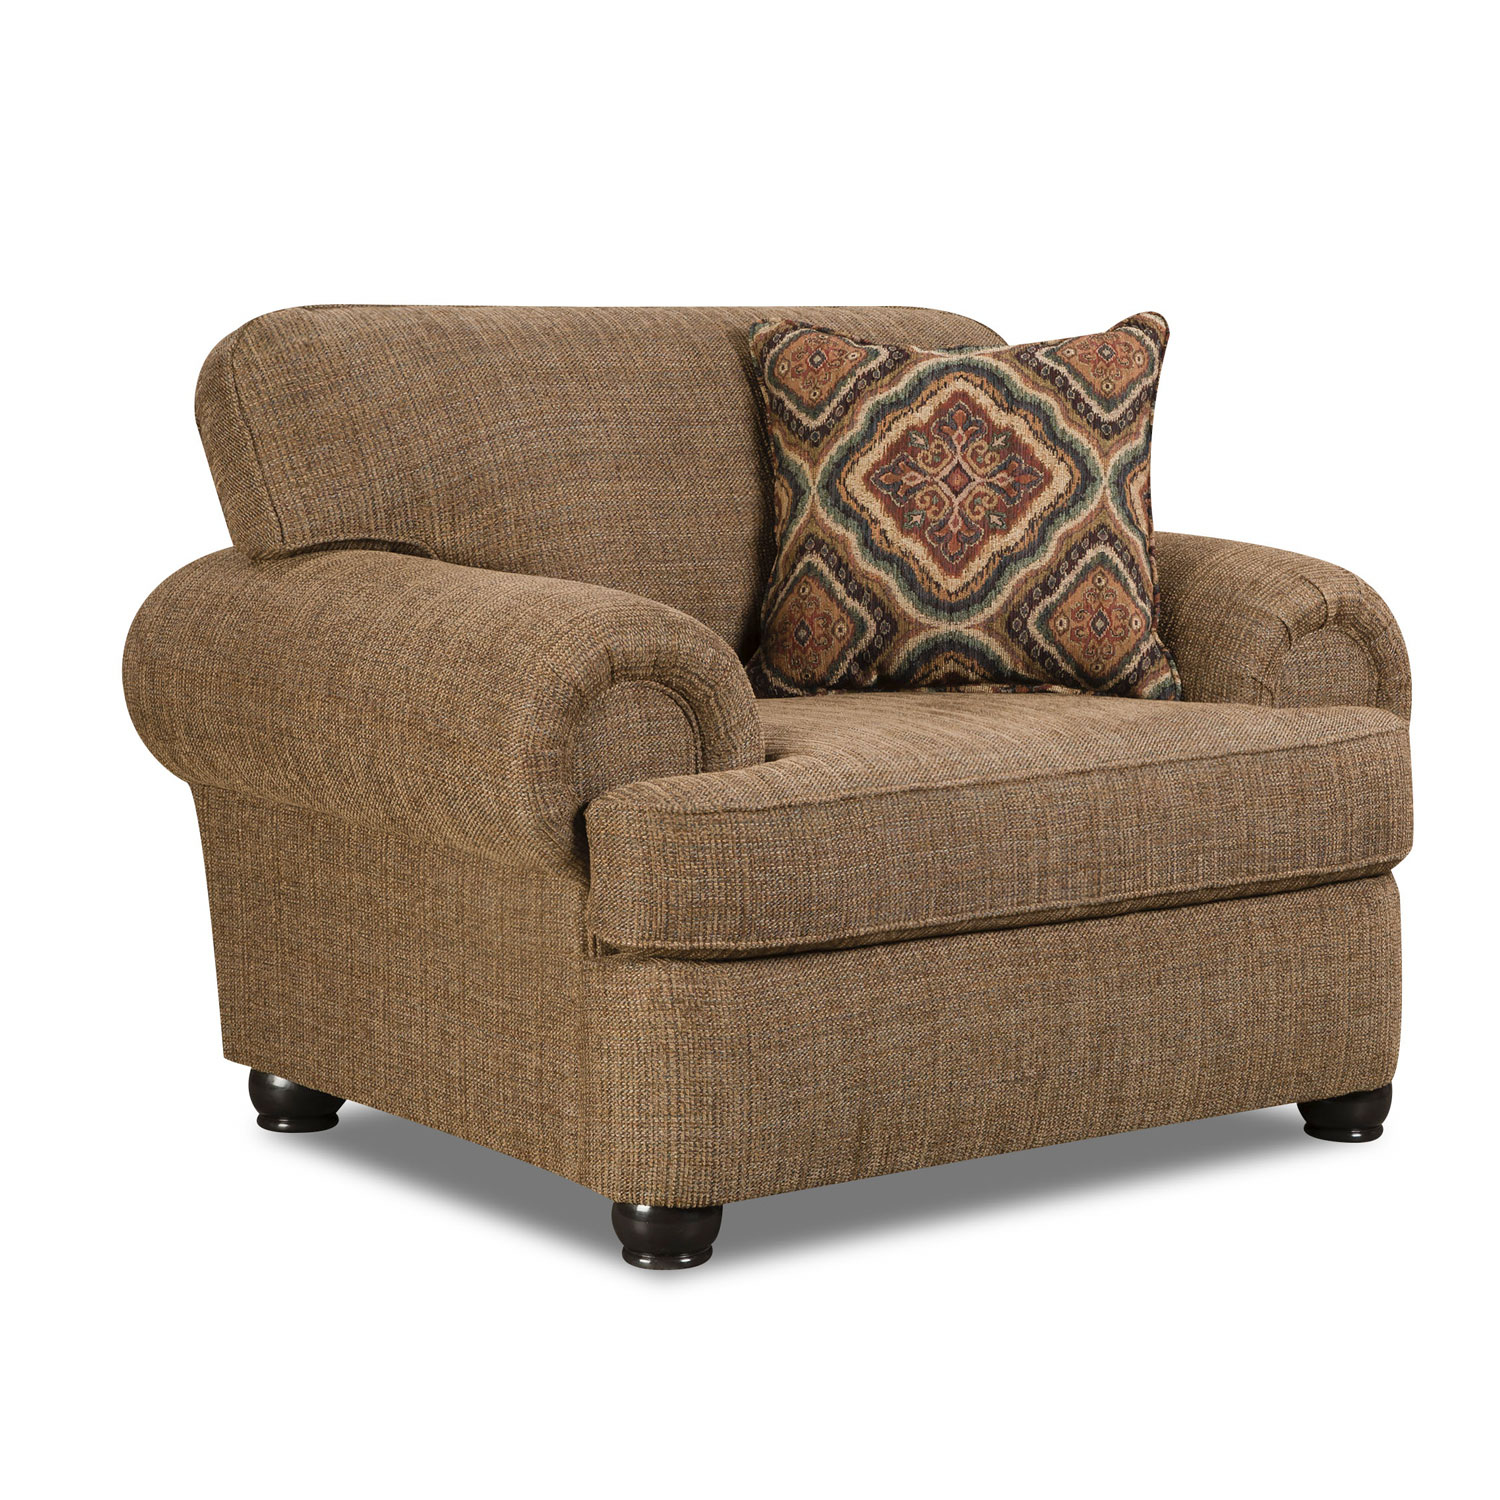 Simmons Beautyrest ChairBRC Amp Ottoman 7533BRO Shelby Multi